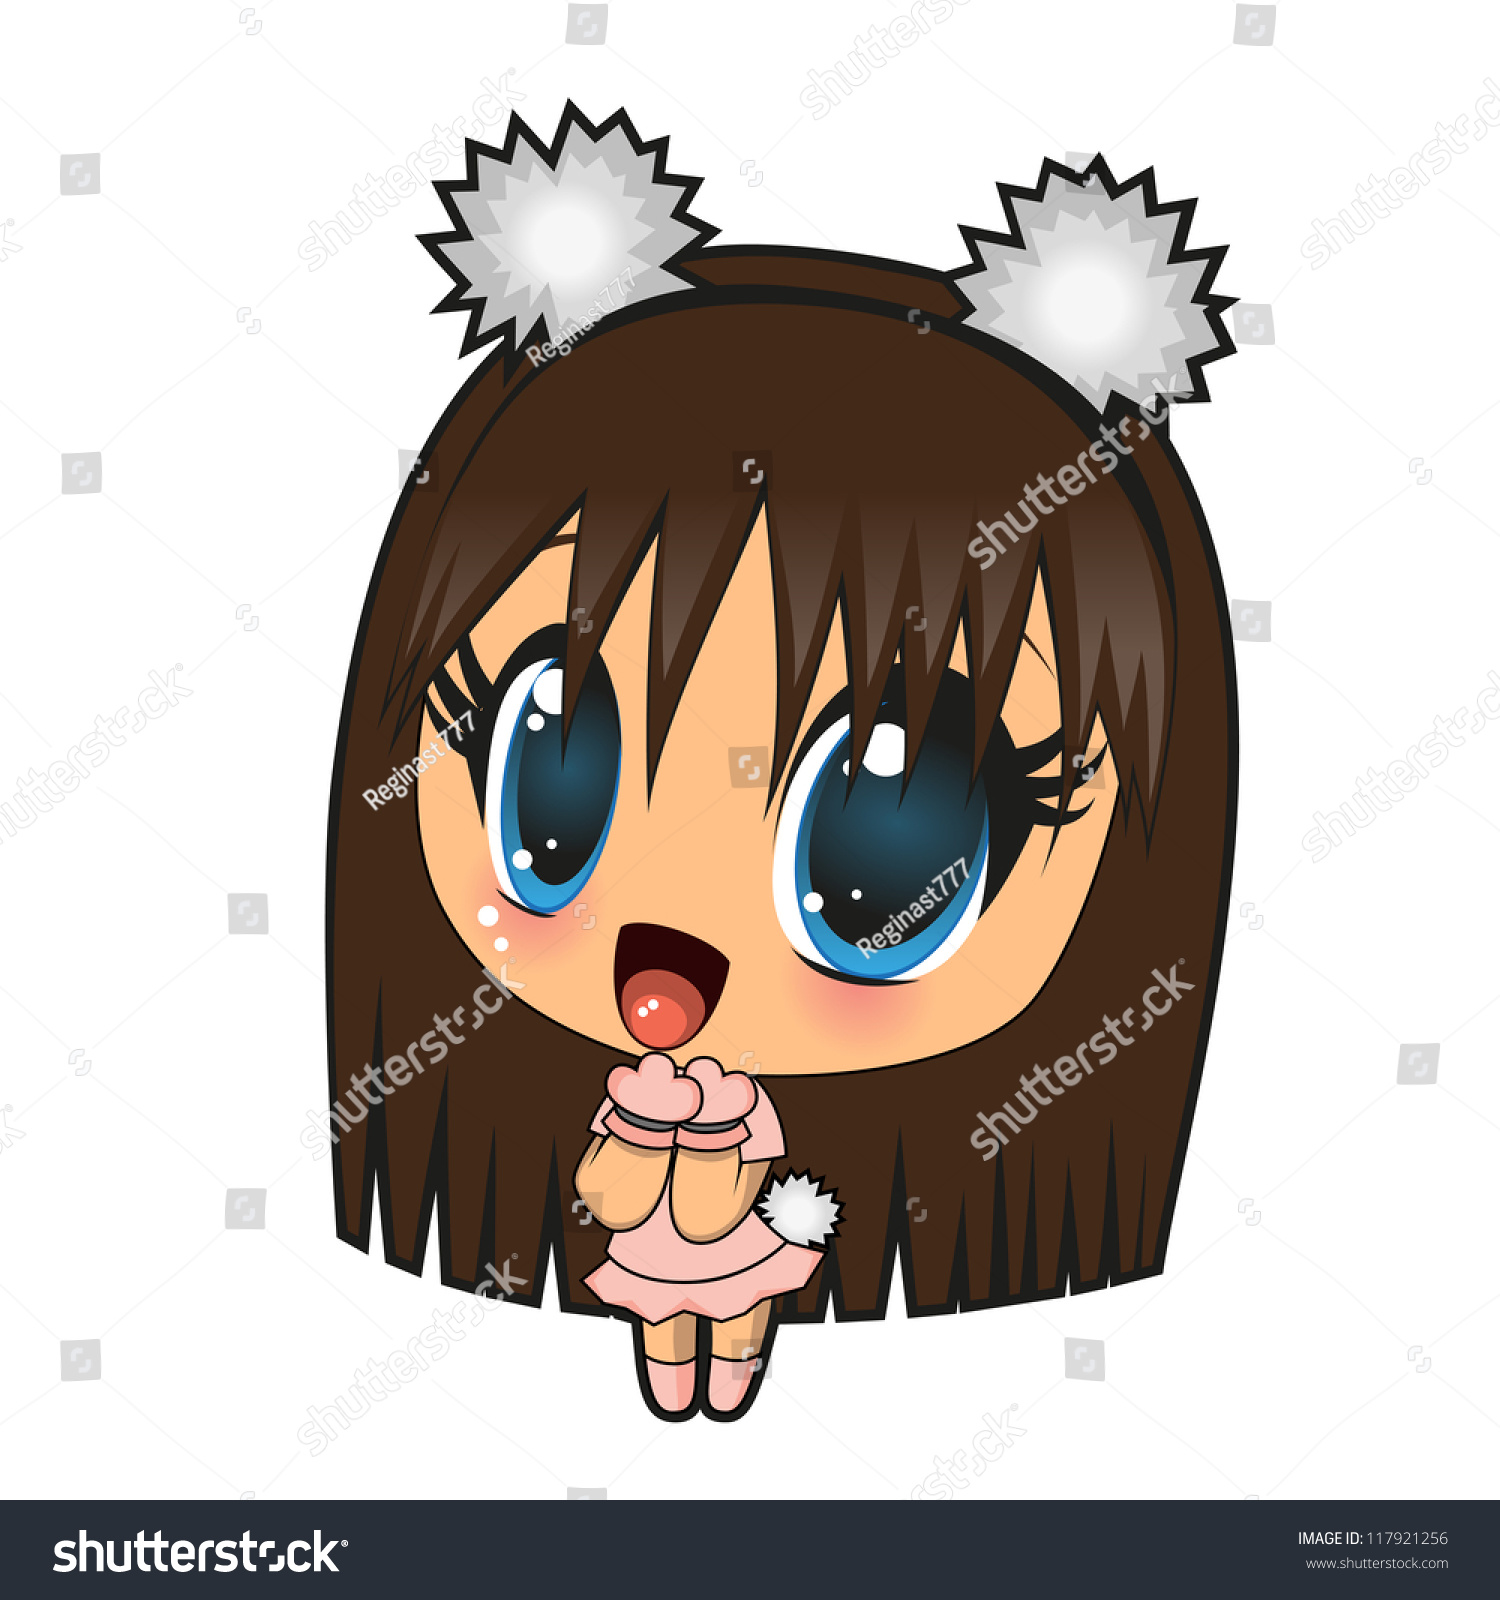 Anime Characters Vector : Cute anime girl isolated on a white background stock